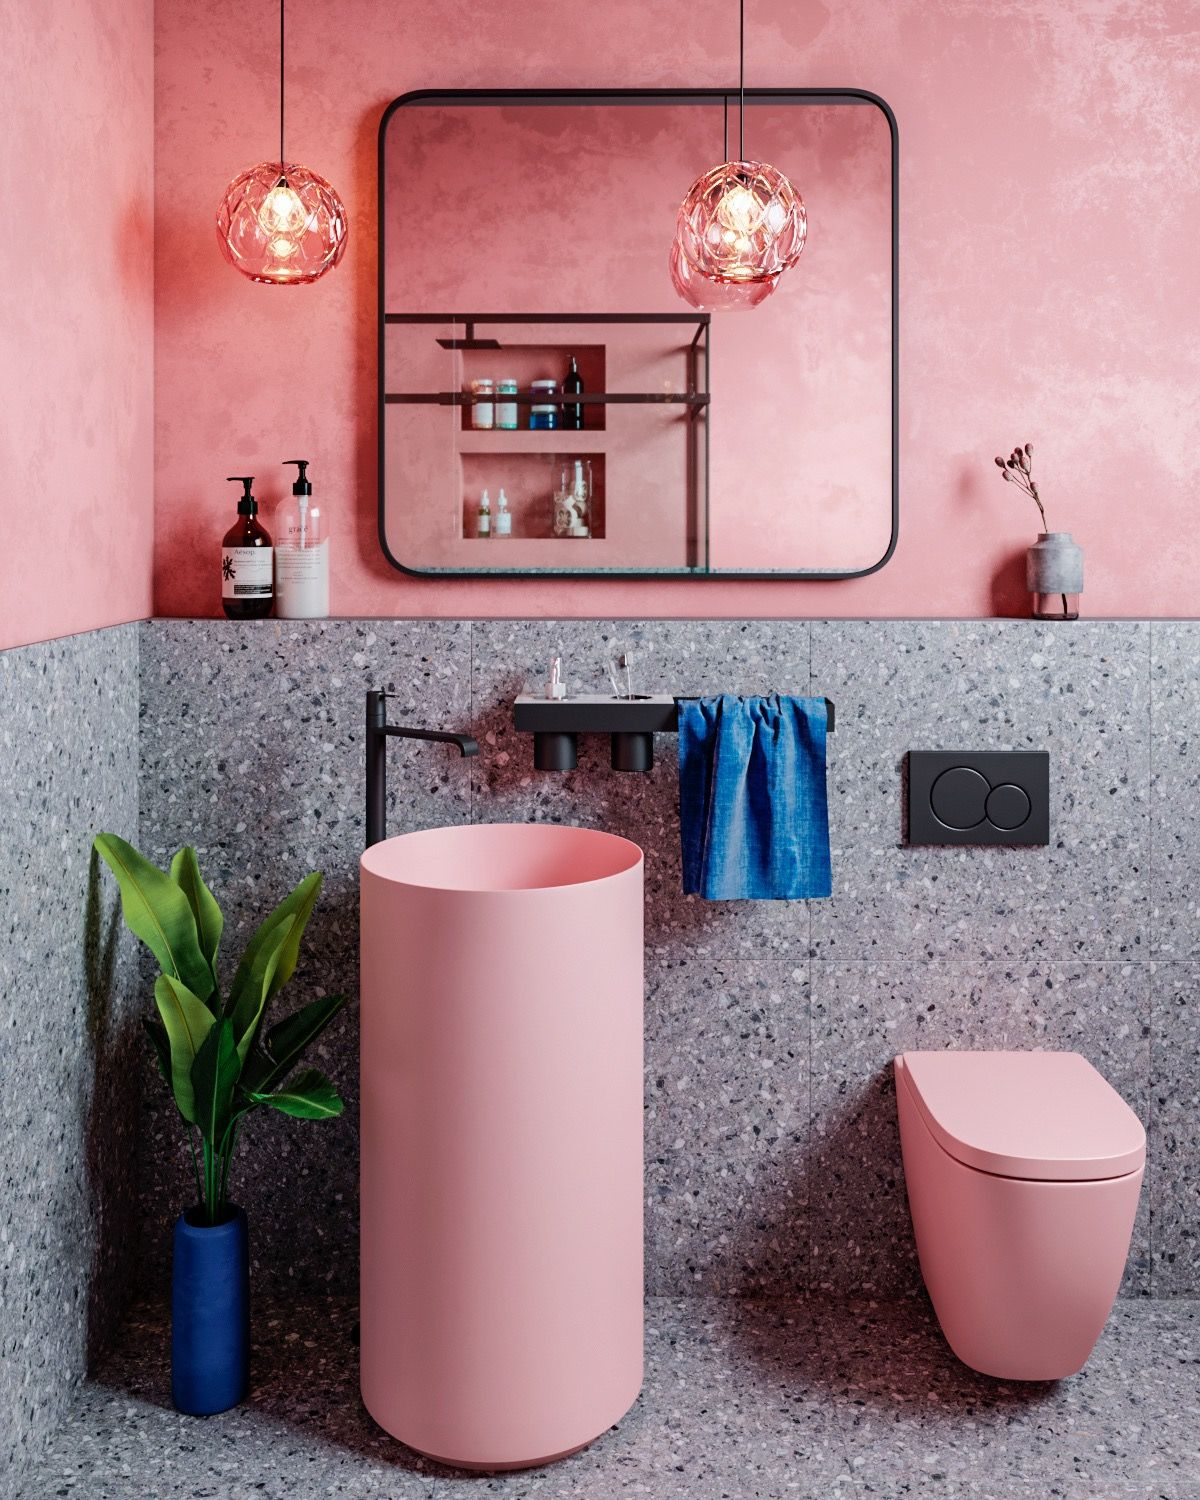 51 Pink Bathrooms With Tips Photos And Accessories To Help You Decorate Yours Pink Bathroom Pink Bathroom Decor Pink Toilet